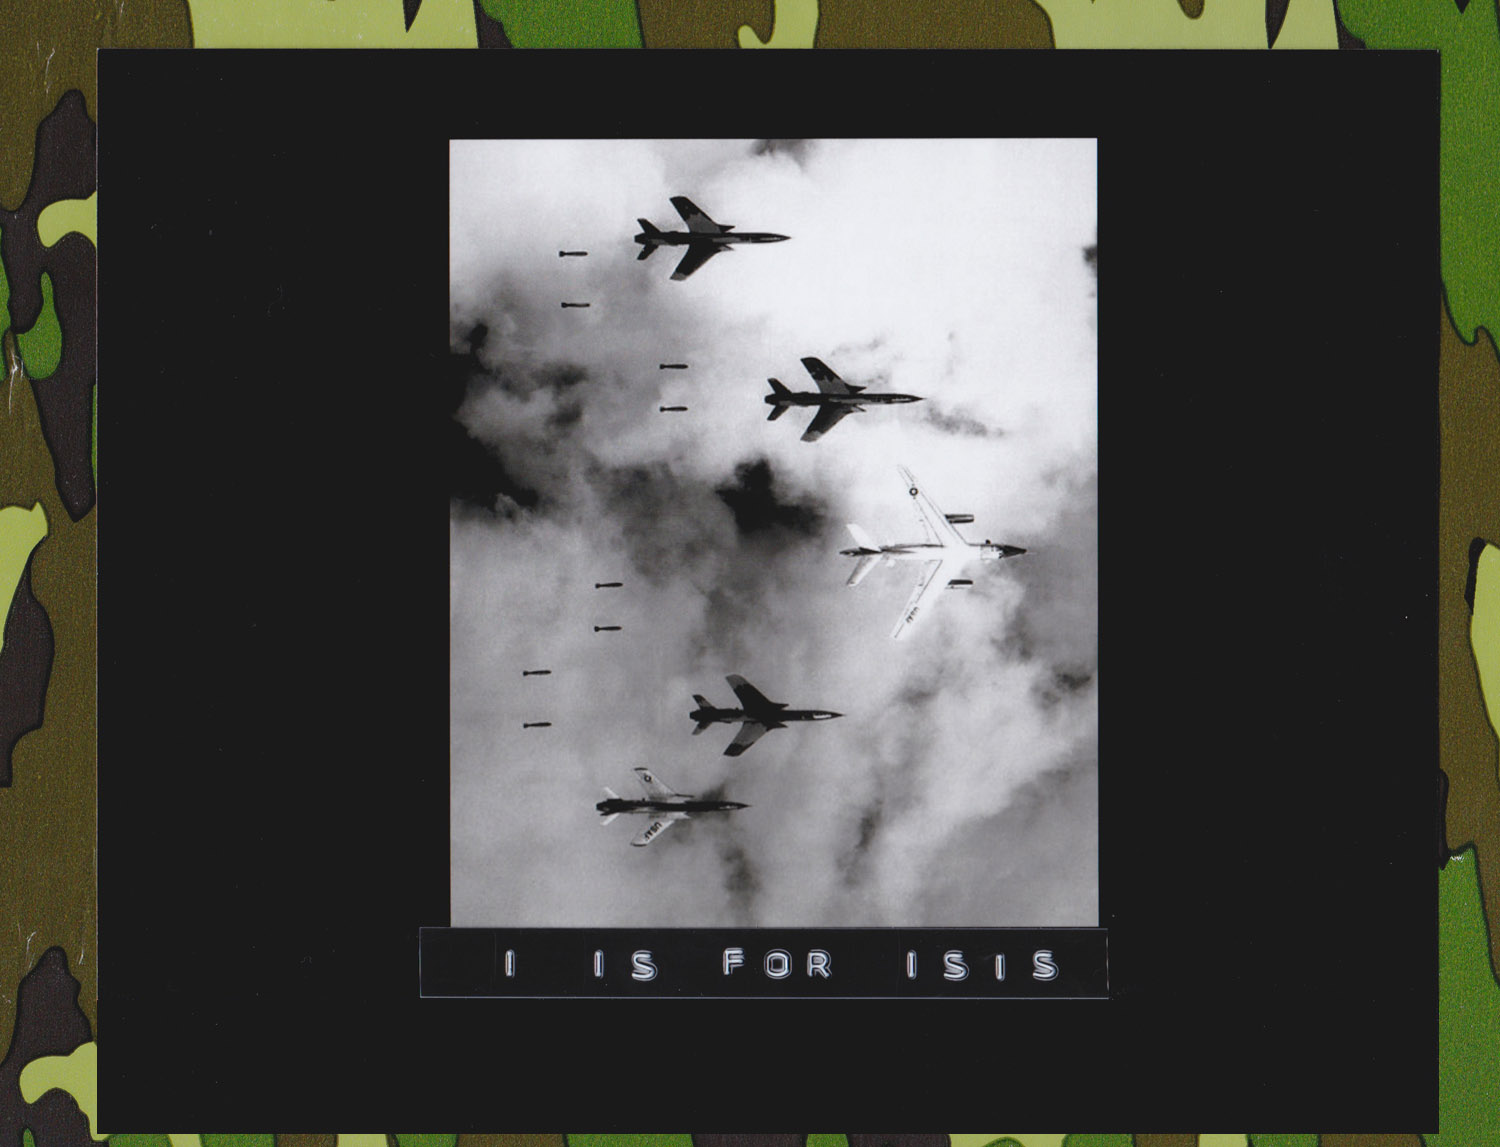 Flying under radar control with a B-66 Destroyer, Air Force F-105 Thunderchief pilots bomb a military target through low clouds over the southern panhandle of North Viet Nam. June 14, 1966. (Author Lt. Col. Cecil J. Poss, 20th TRS on RF-101C, USAF. Source: U.S. Defense Imagery)